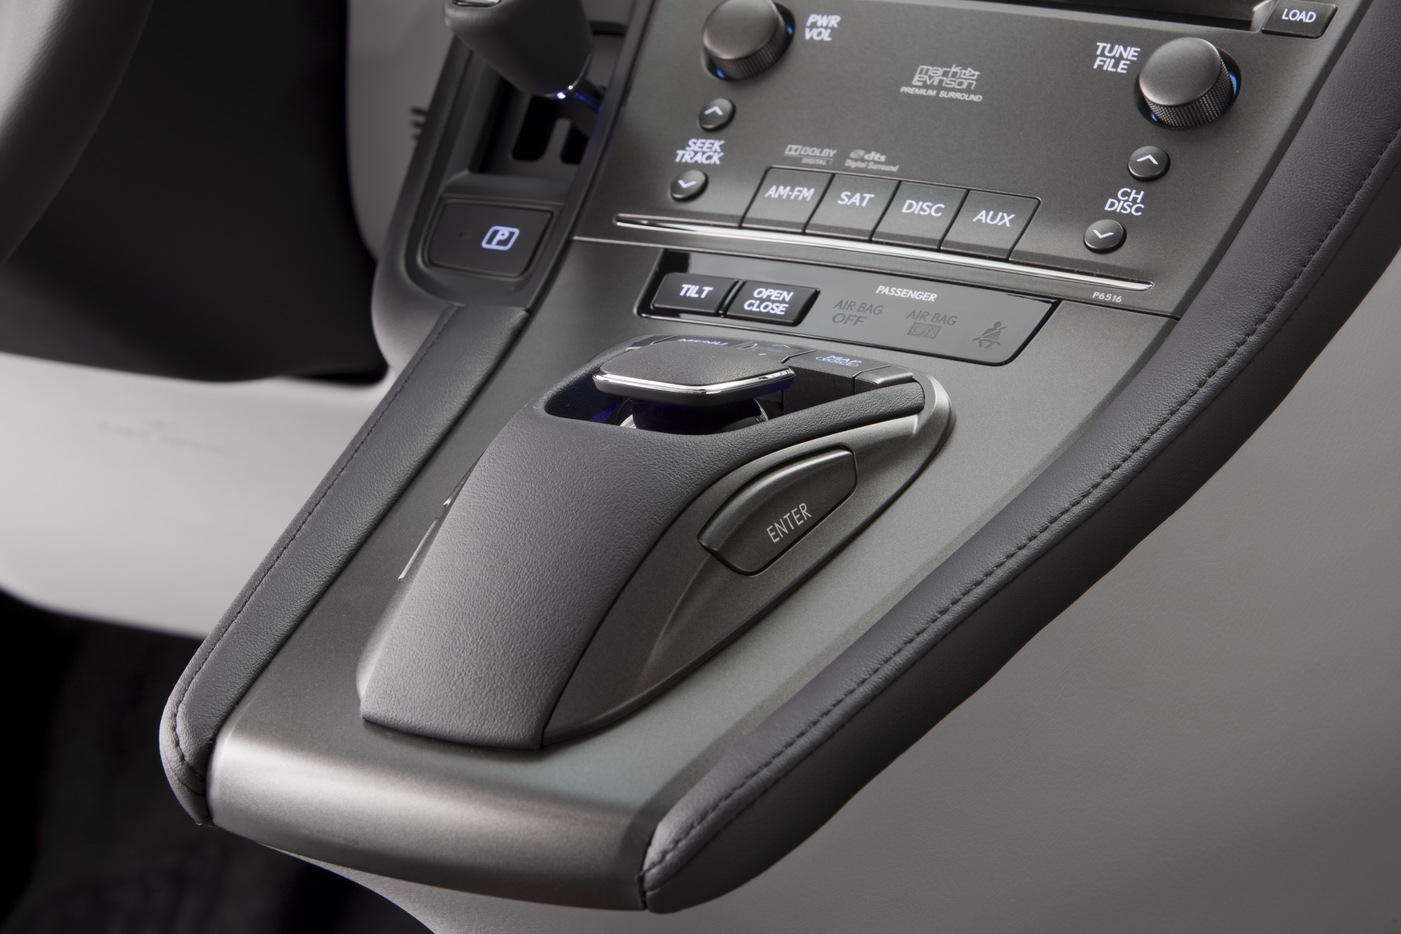 New 2010 Lexus HS250h: Dedicated Hybrid Sedan » Lexus Hs 250h 2010  Interior Img_11